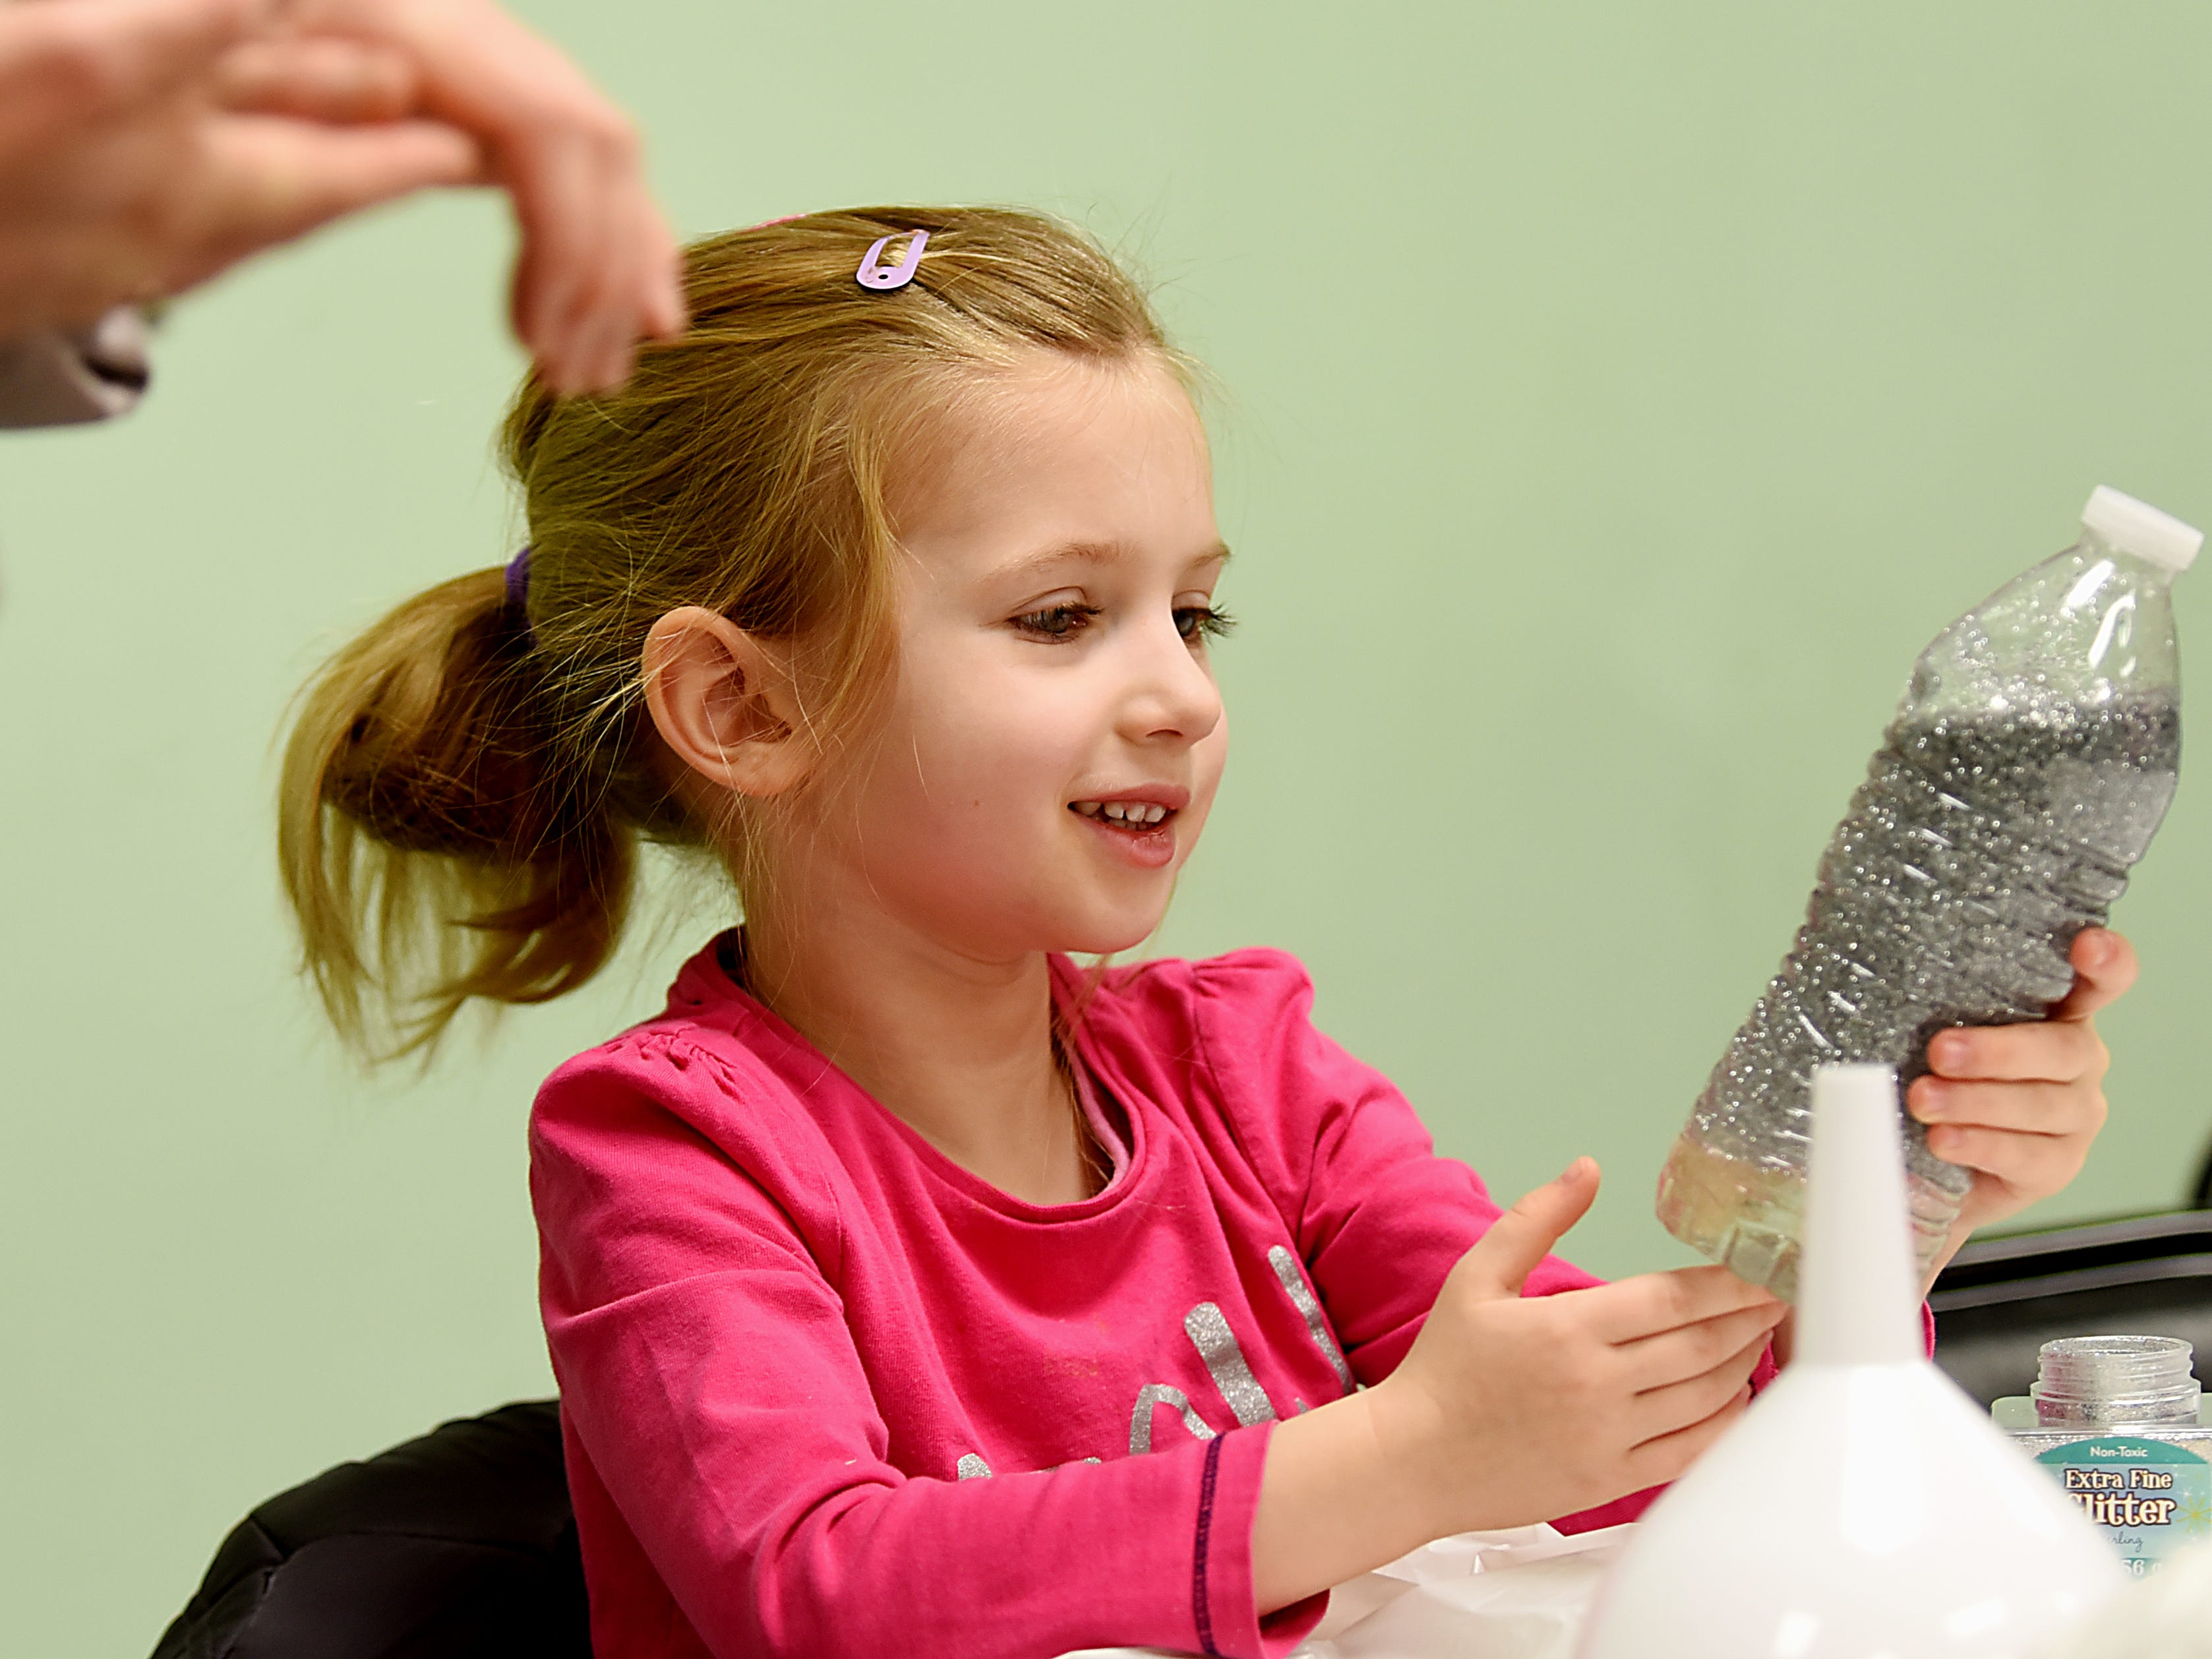 Olivia Mazur, 5 smiles as she looks at her snowstorm in a bottle. This is part of the STEM Saturday series at East Rutherford Memorial Library on Saturday January 12, 2019.